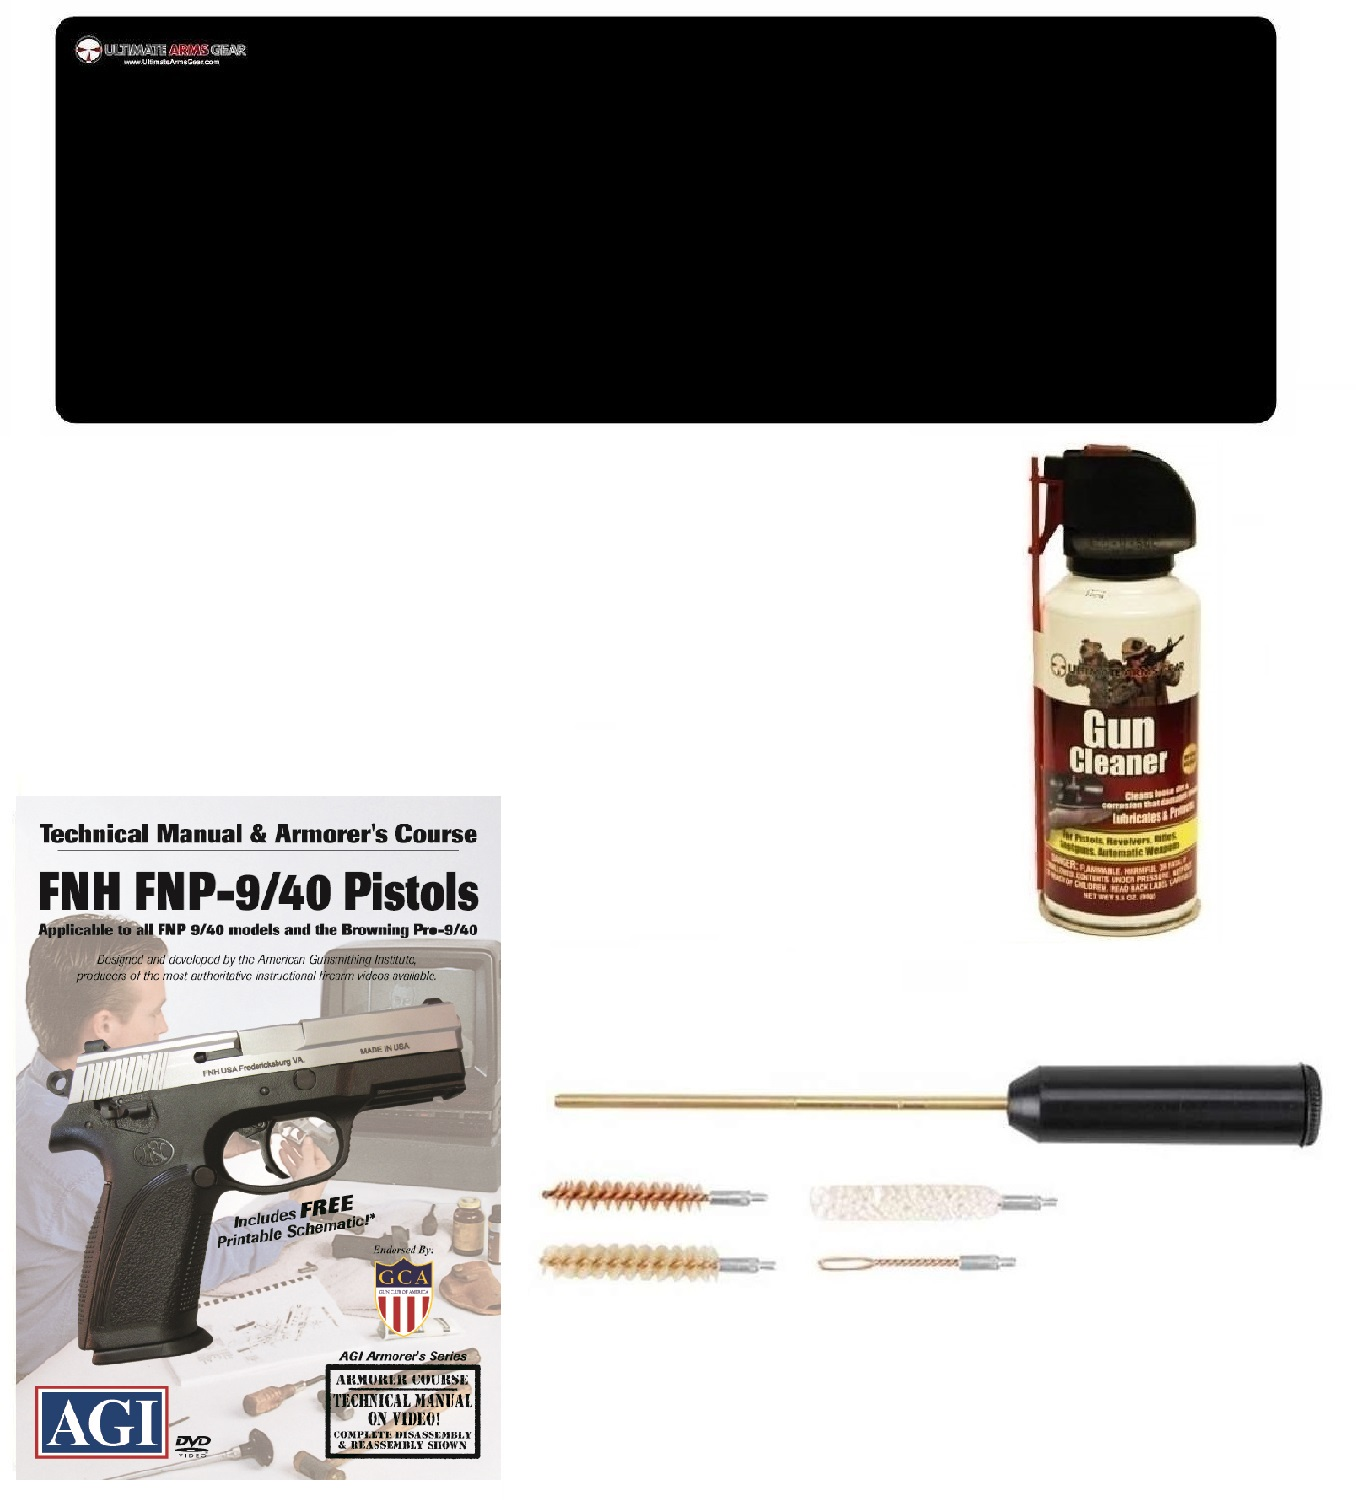 AGI DVD Armorer's Course FNH FNP-9 FN-40 Semi Auto Pistols + Ultimate Arms Gear Gunsmith & Armorer's Cleaning Bench Gun Mat + Compact Pocket Sized Travelling Cleaning Kit + Cleaner Spray